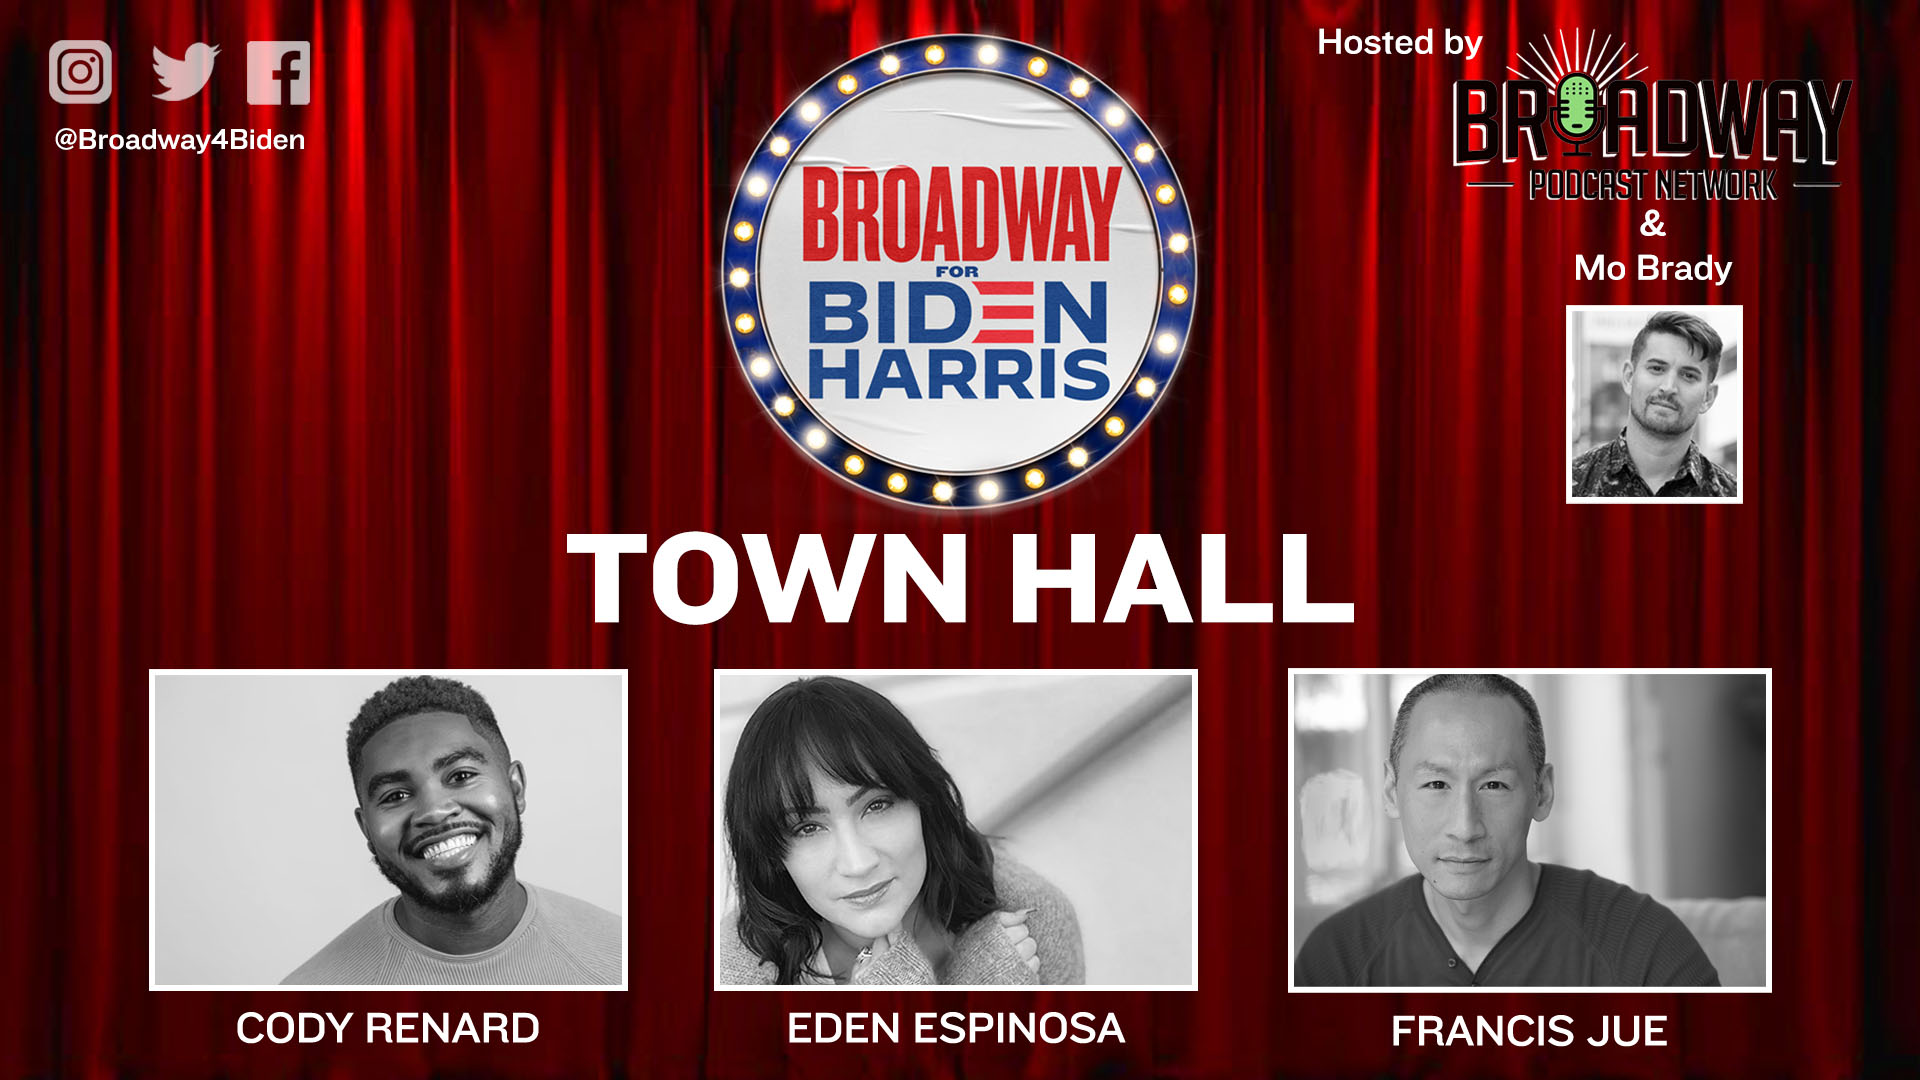 News Item: Broadway for Biden's first Town Hall Event hosted by the Broadway Podcast Network